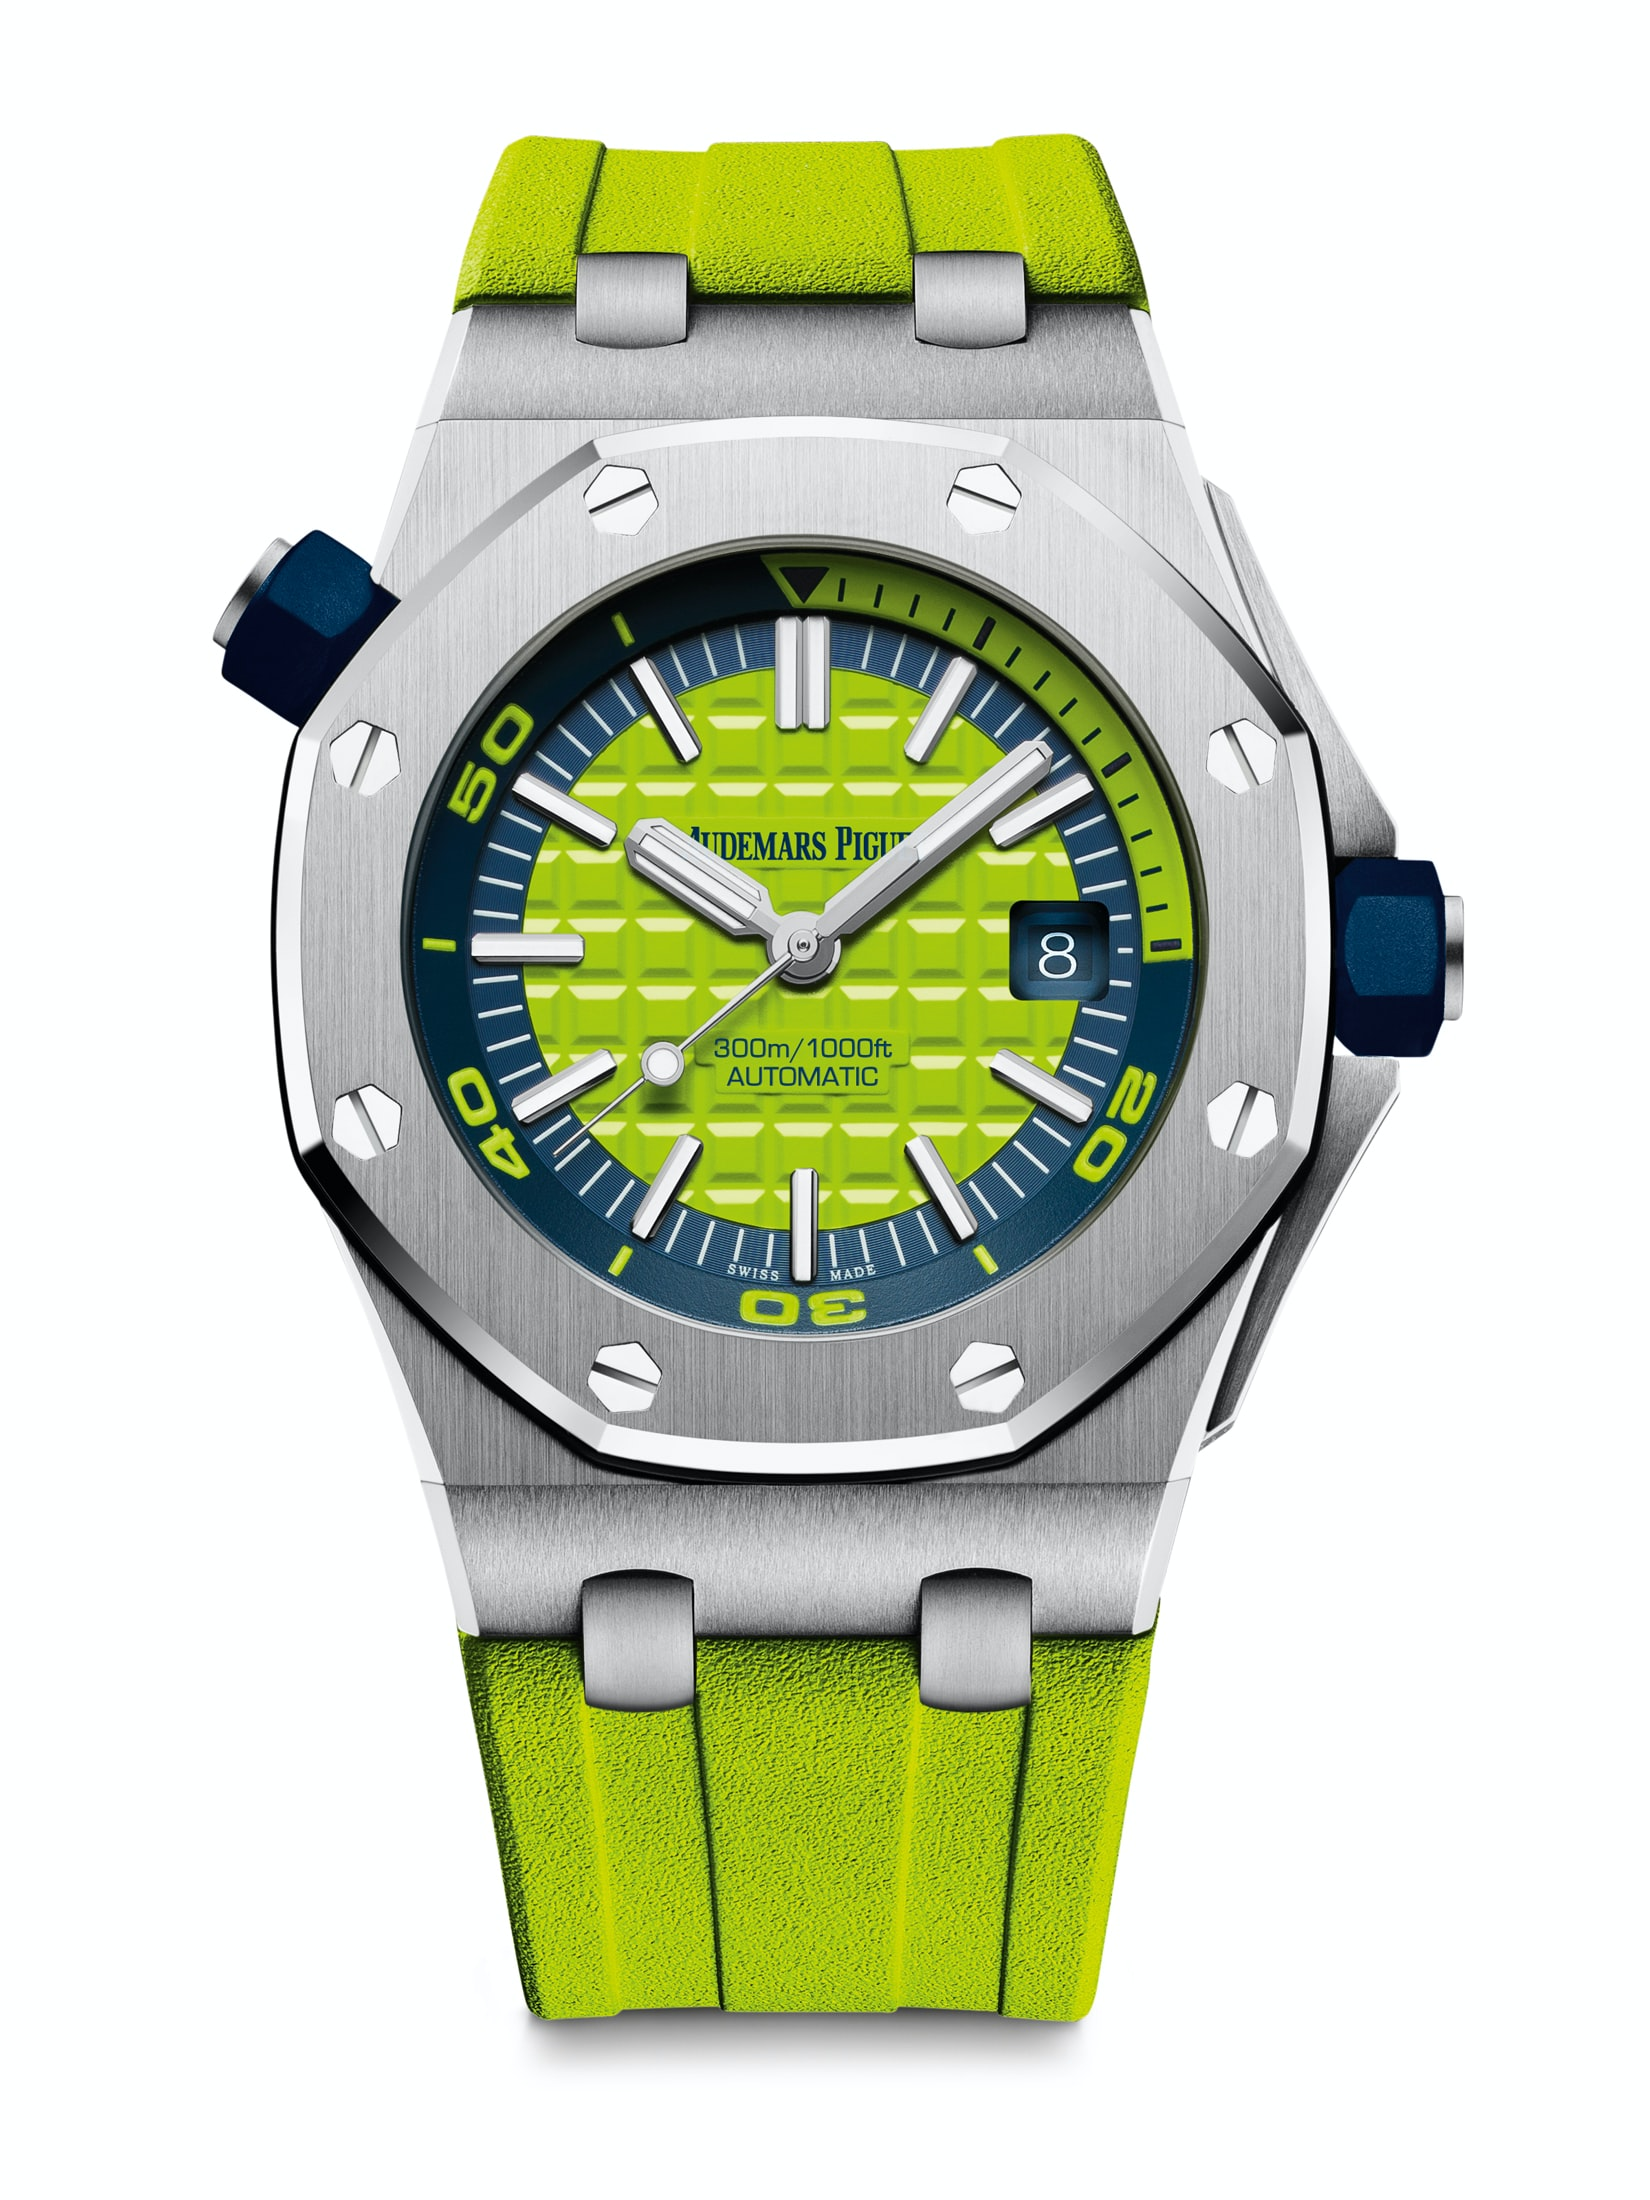 Introducing: The Audemars Piguet Royal Oak Offshore Diver In A Suite Of New (Bright) Colors Introducing: The Audemars Piguet Royal Oak Offshore Diver In A Suite Of New (Bright) Colors diver 04